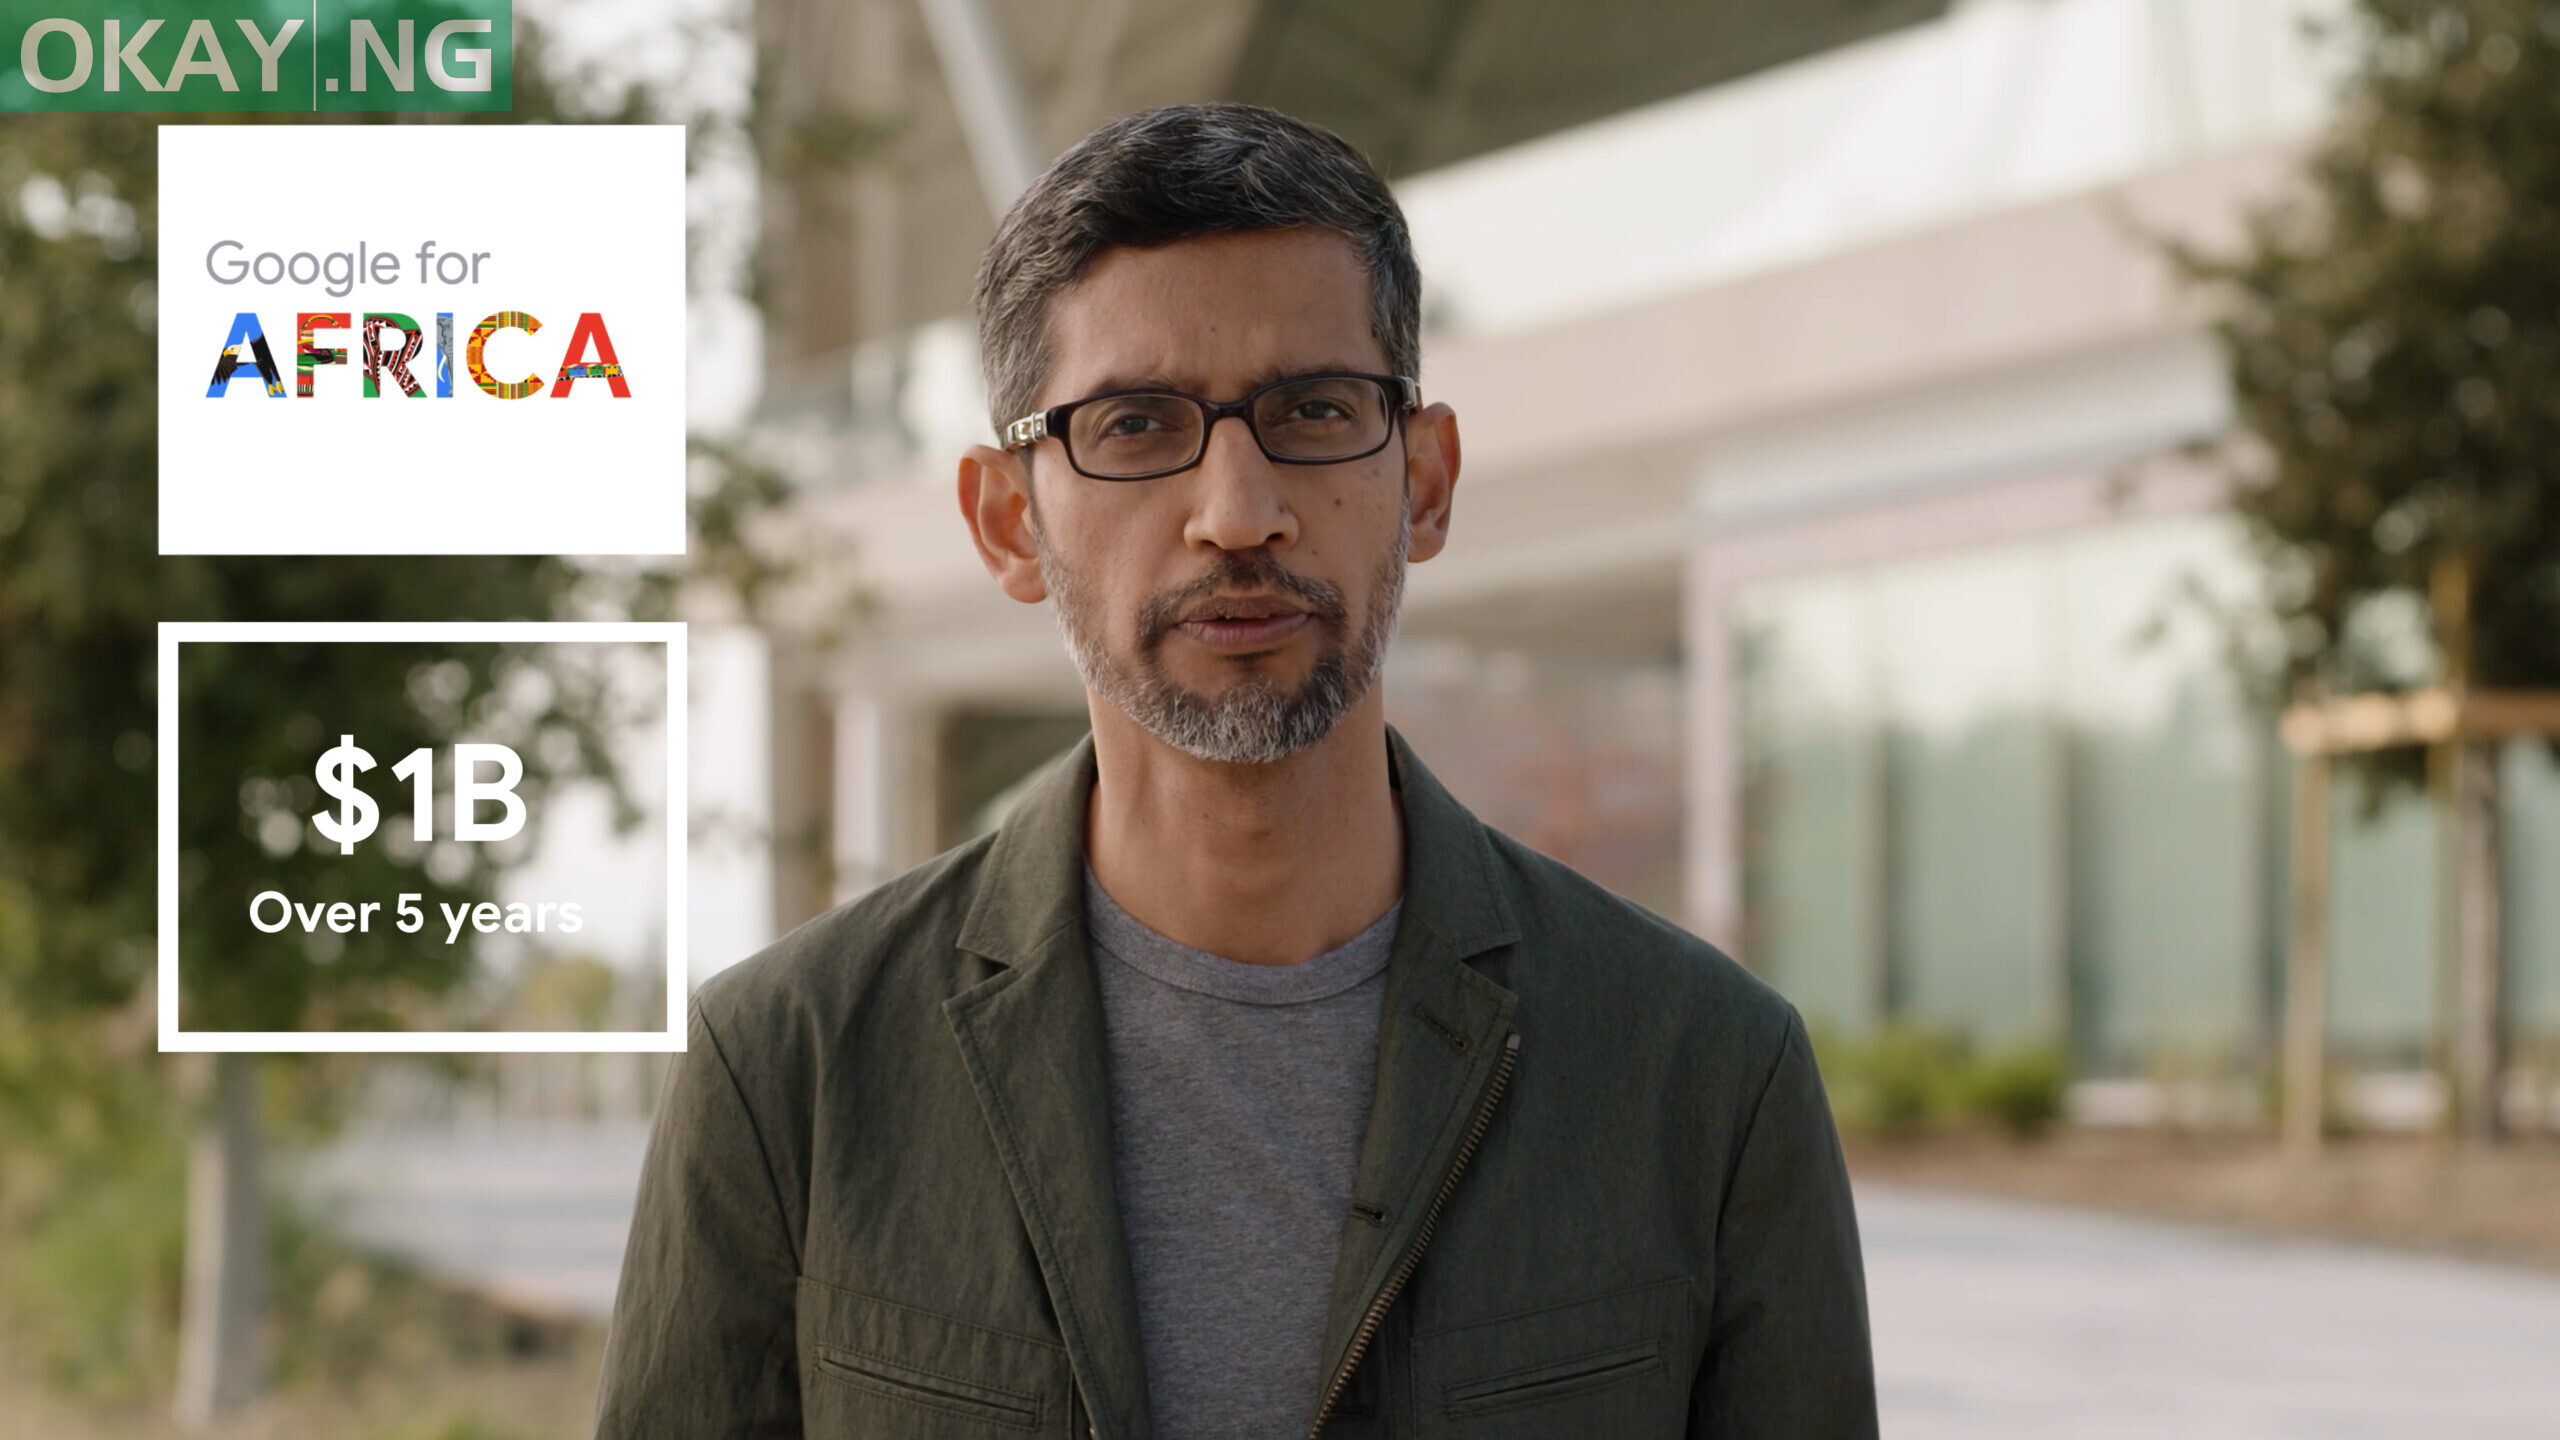 Google CEO Sundar Pichai speaking during its first virtual Google for Africa event